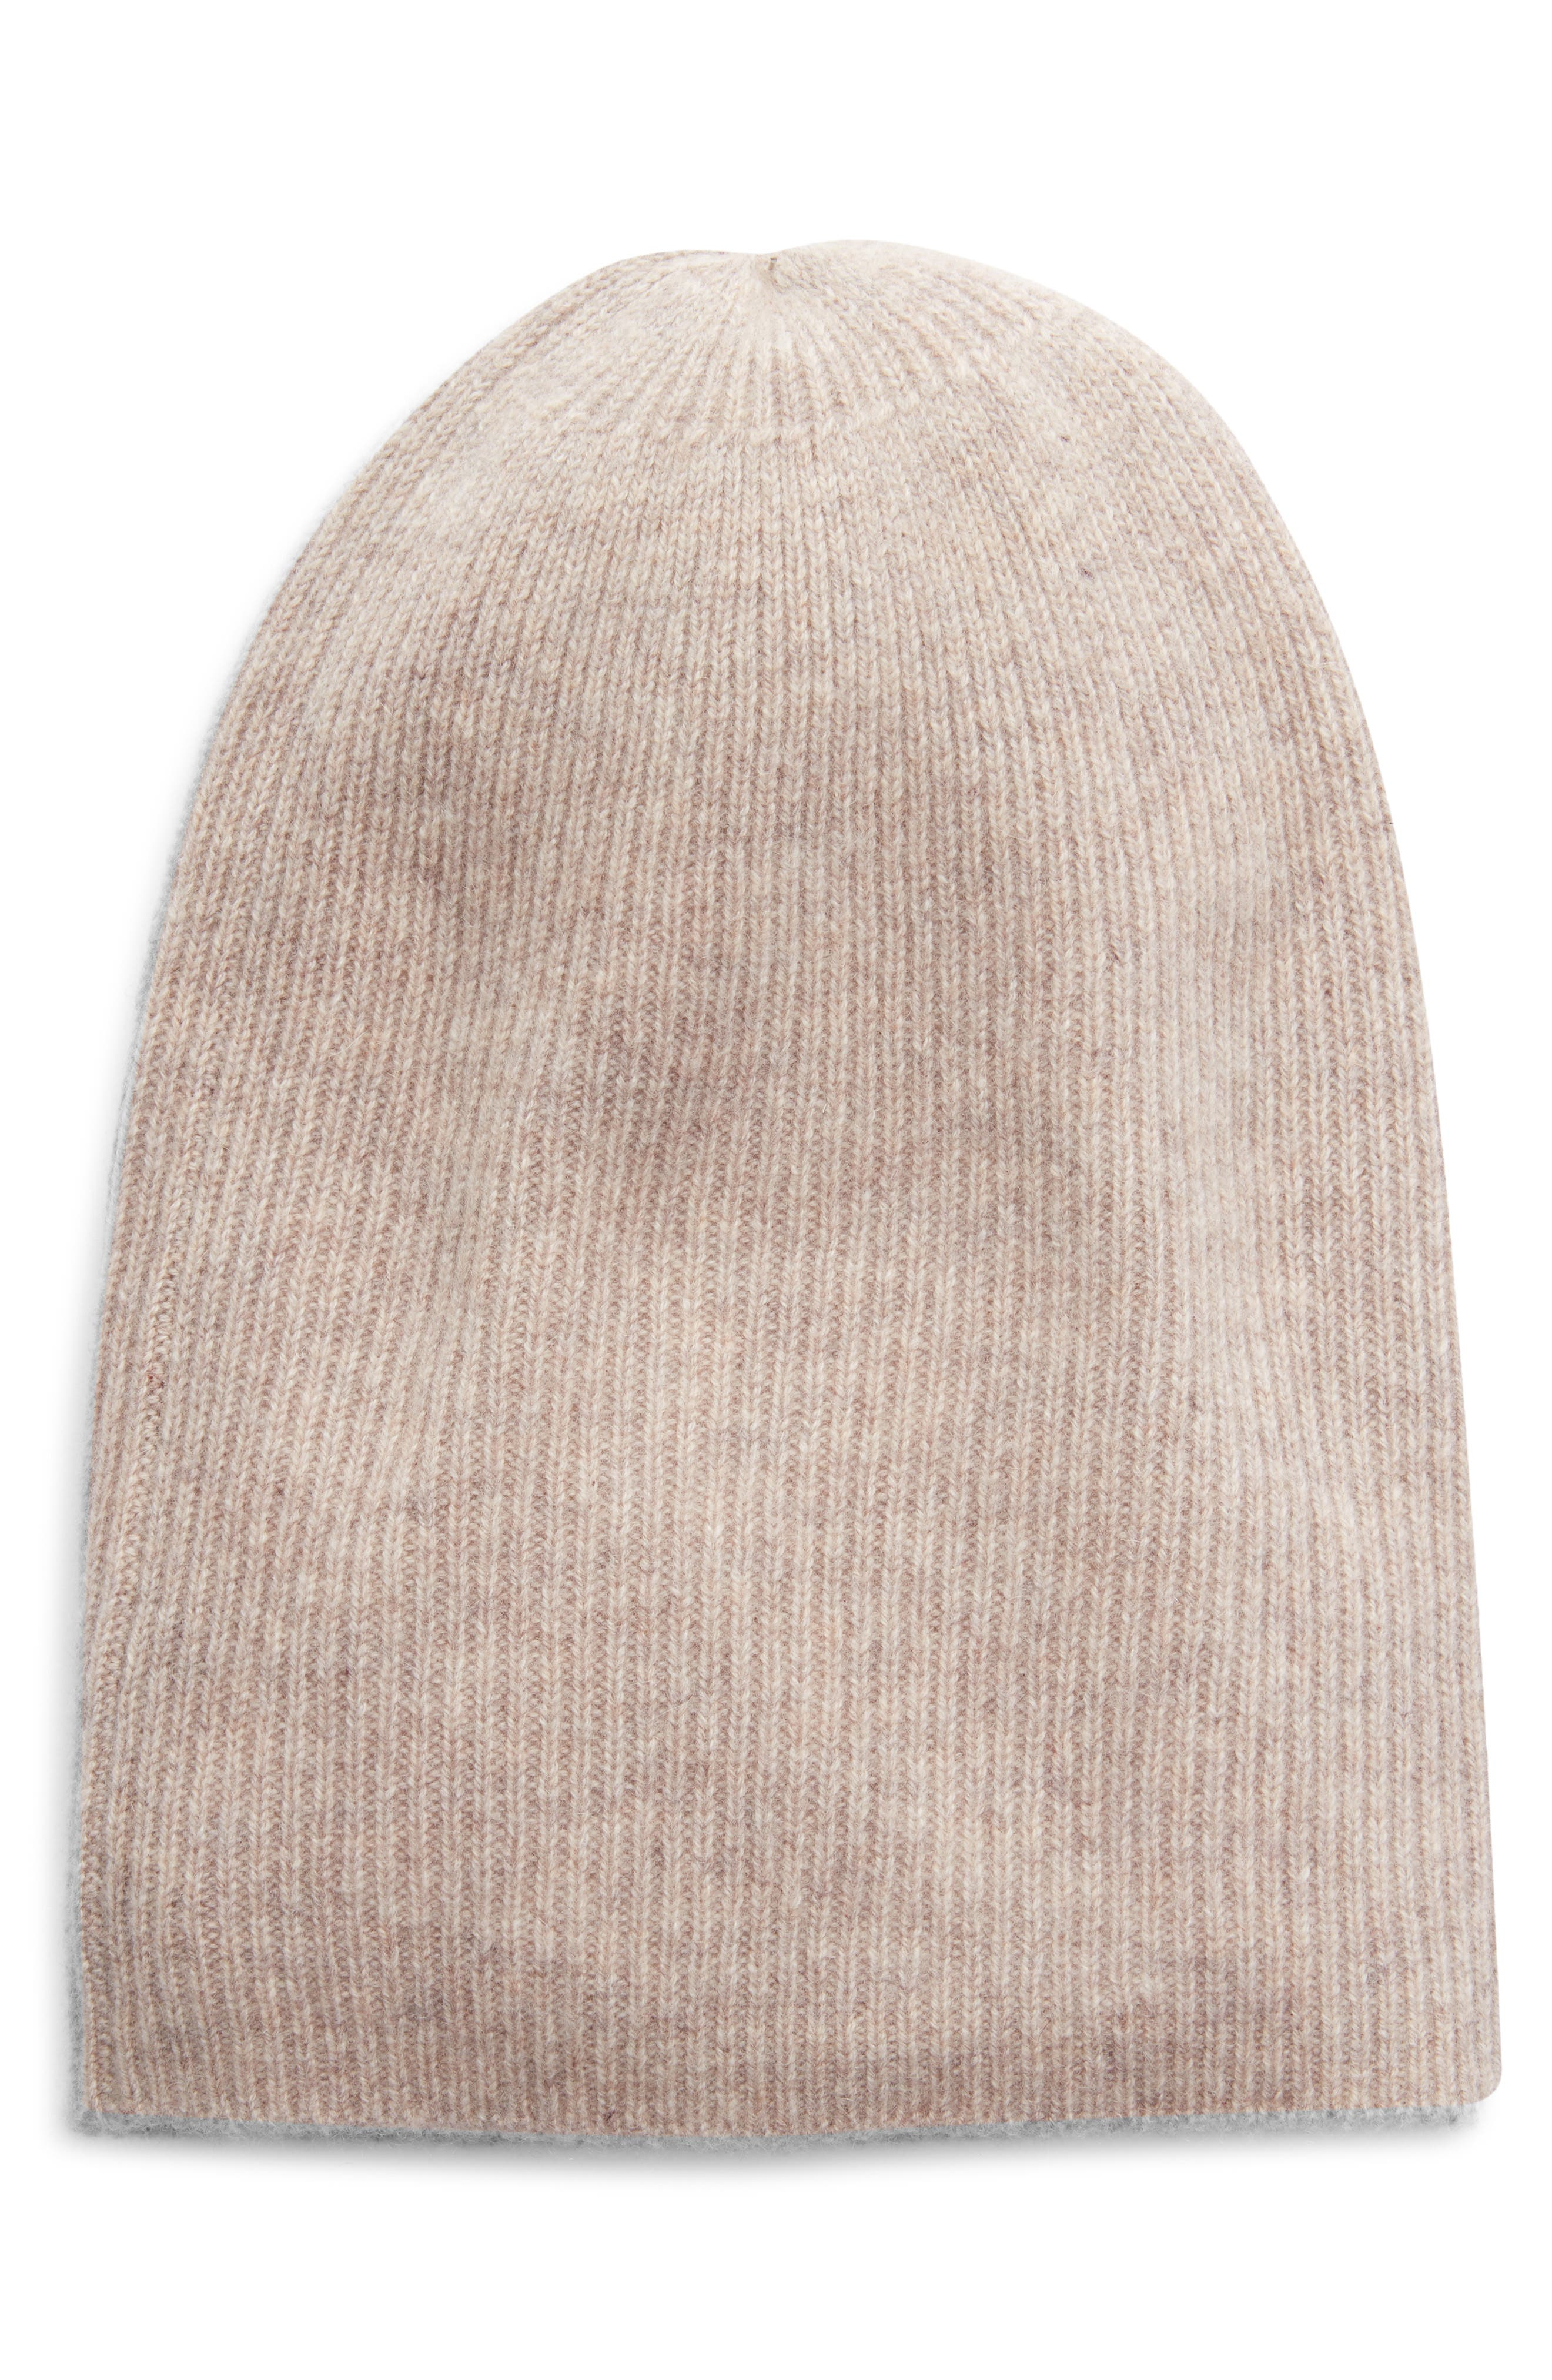 A ribbed beanie knit from soft cashmere is an out-the-door essential once the snowflakes start drifting down. Style Name: Halogen Ribbed Cashmere Beanie. Style Number: 6080842. Available in stores.